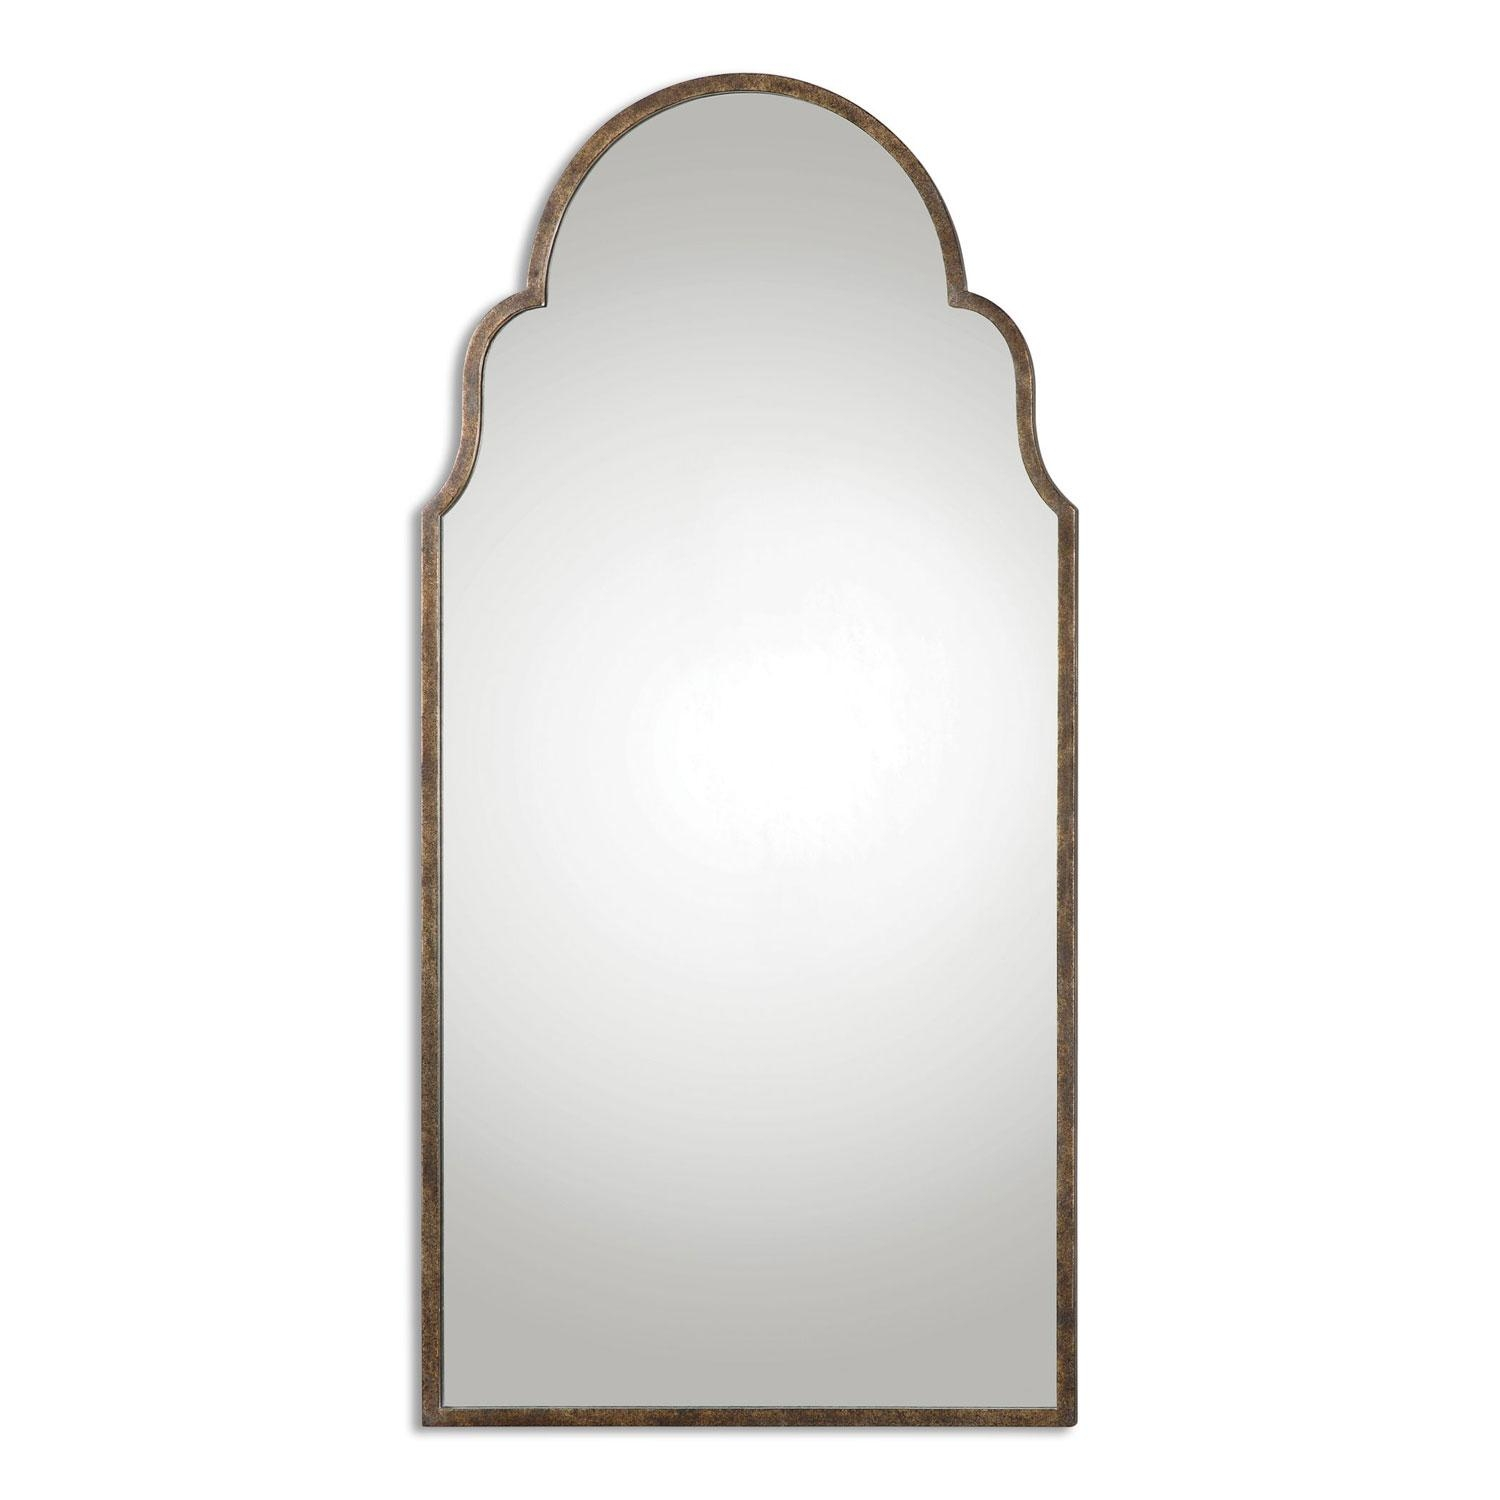 Kenitra Gold Arch Mirror Uttermost Wall Mirror Mirrors Home Decor Throughout Gold Arch Mirror (View 3 of 20)